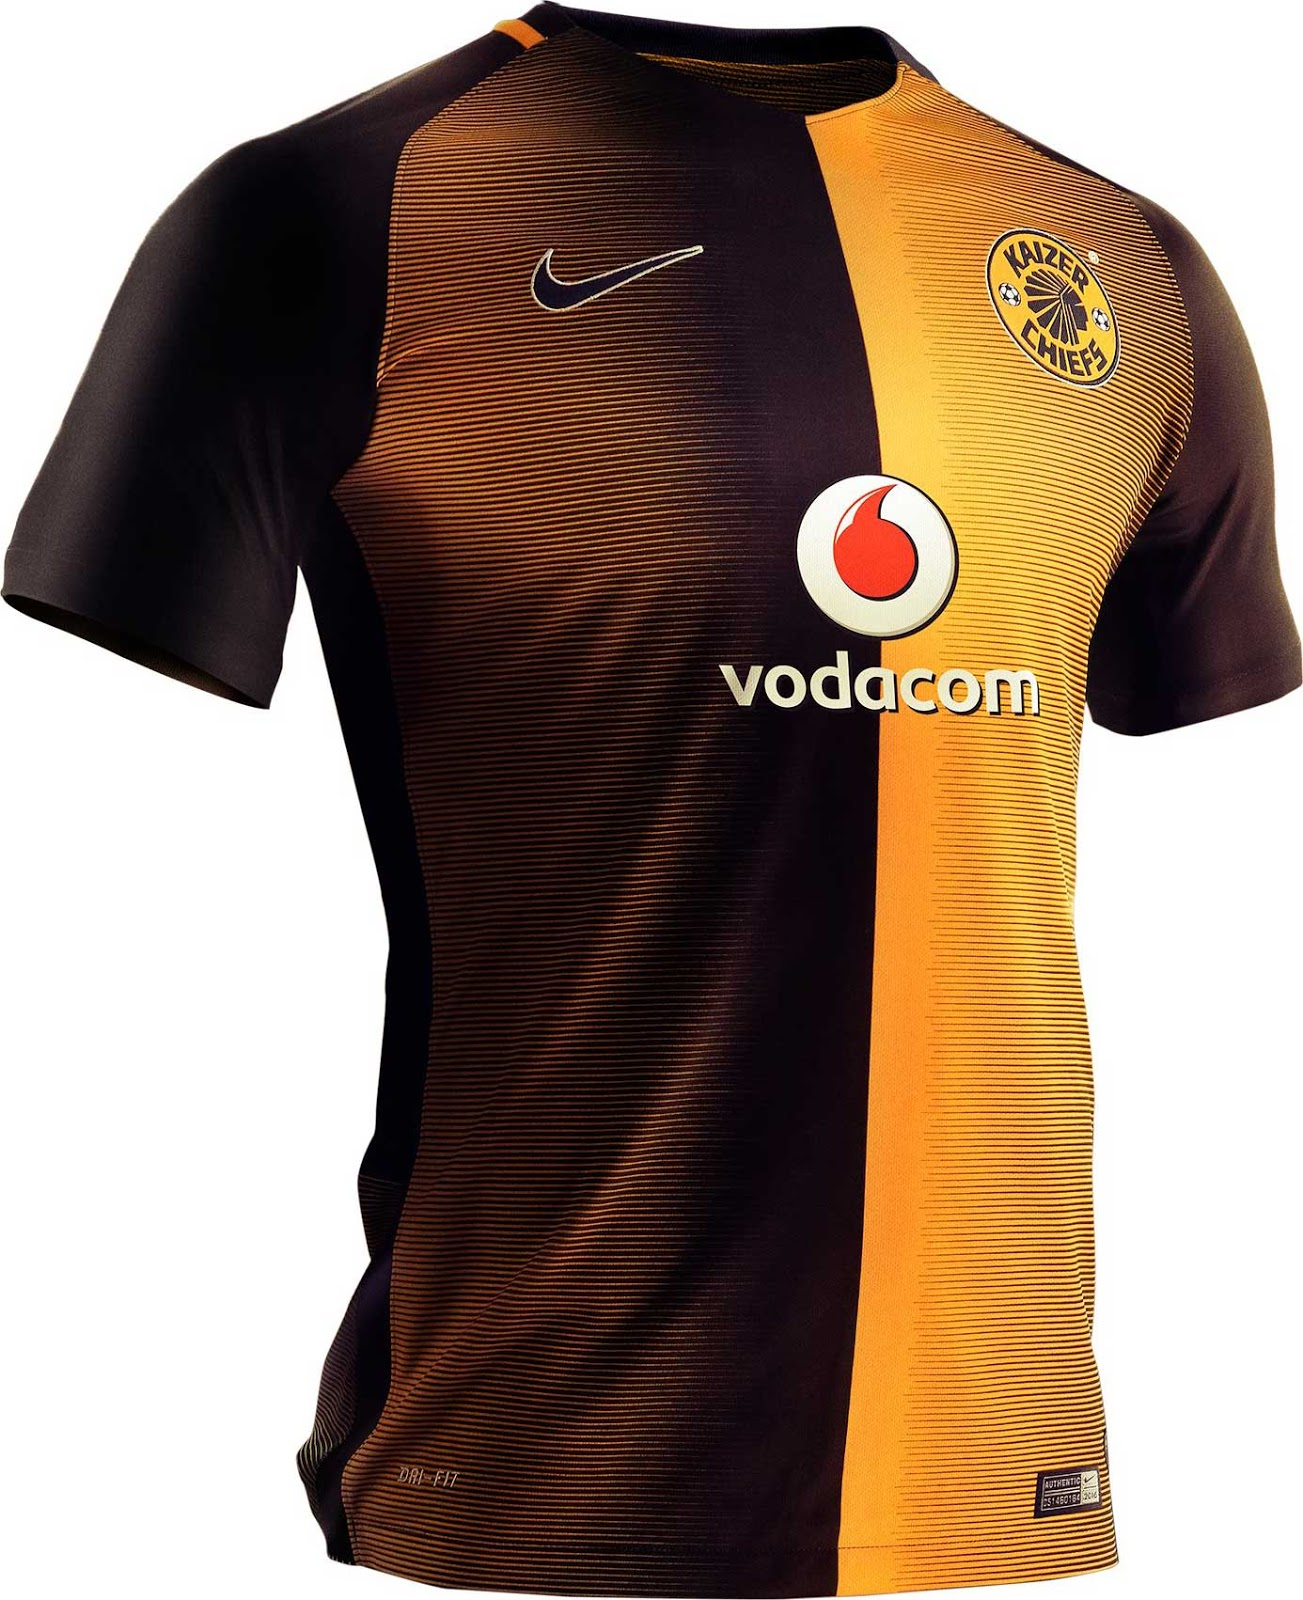 kaizer-chiefs-16-17-away-kit-2.jpg